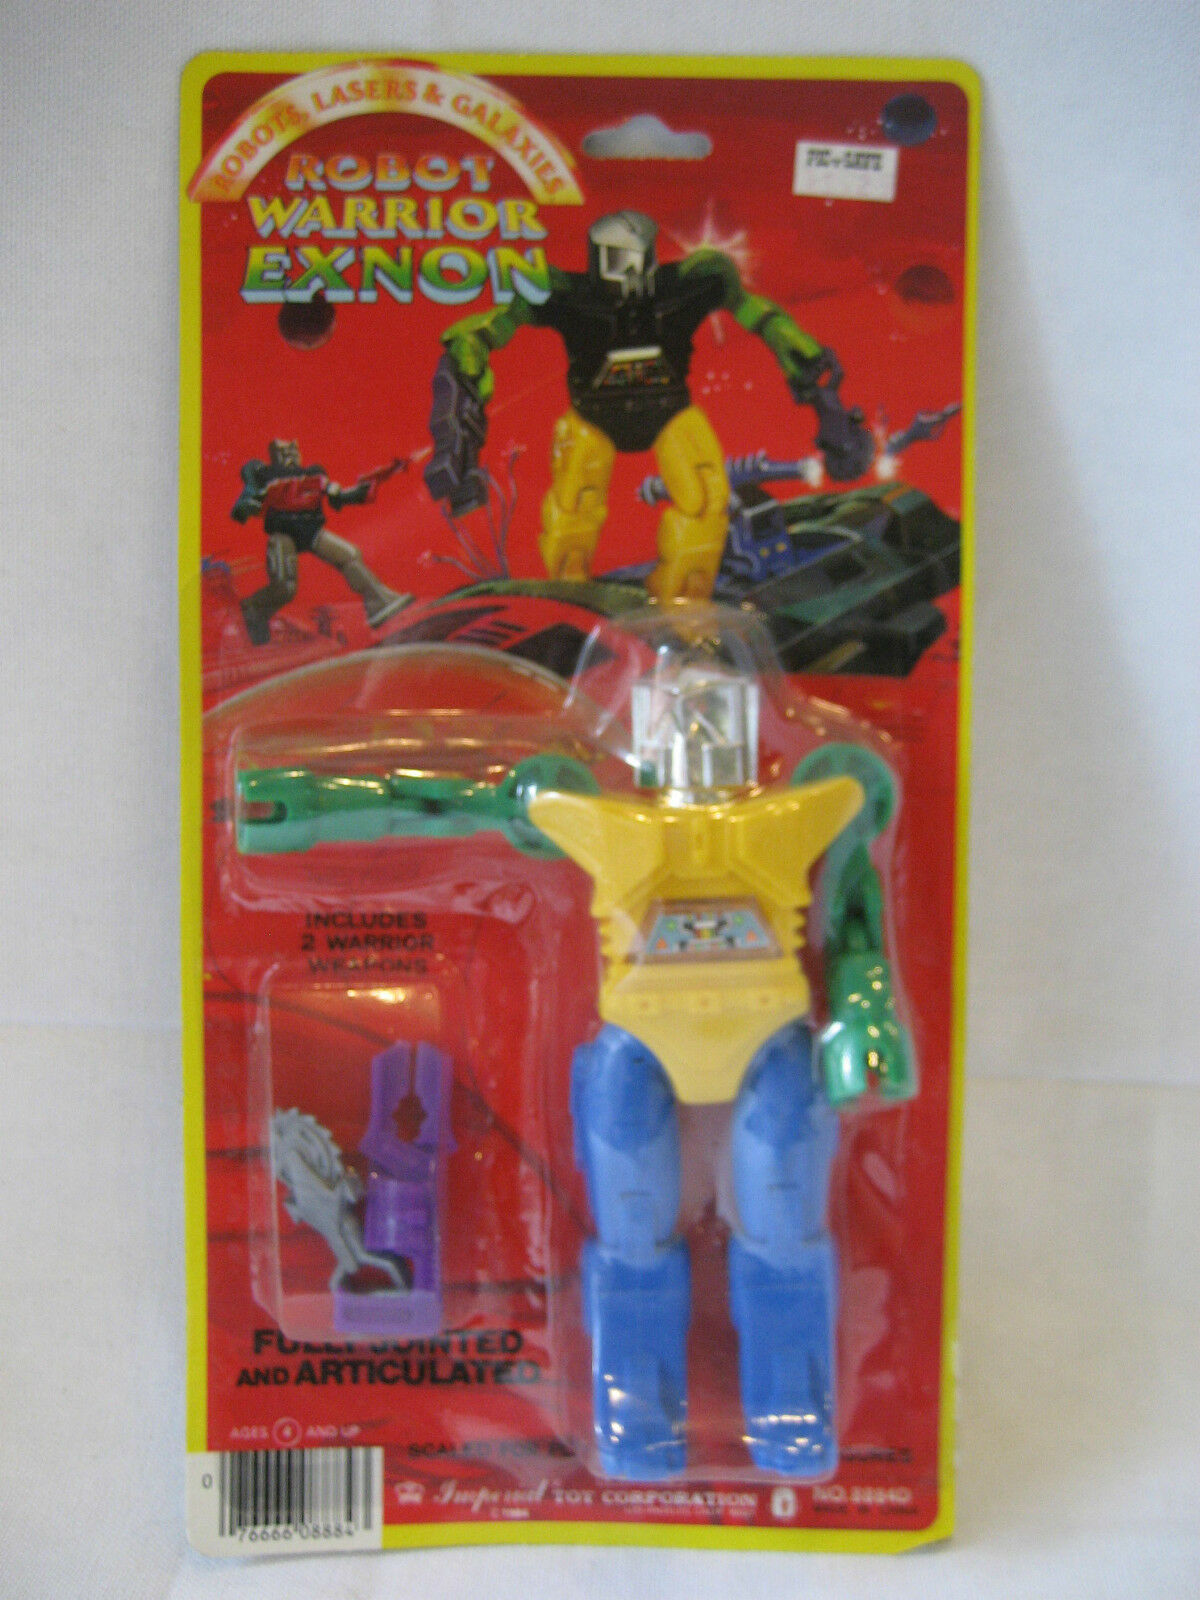 MOC vintage Imperial Robot Warrior EXNON Robots Lasers & Galaxies figure 1984